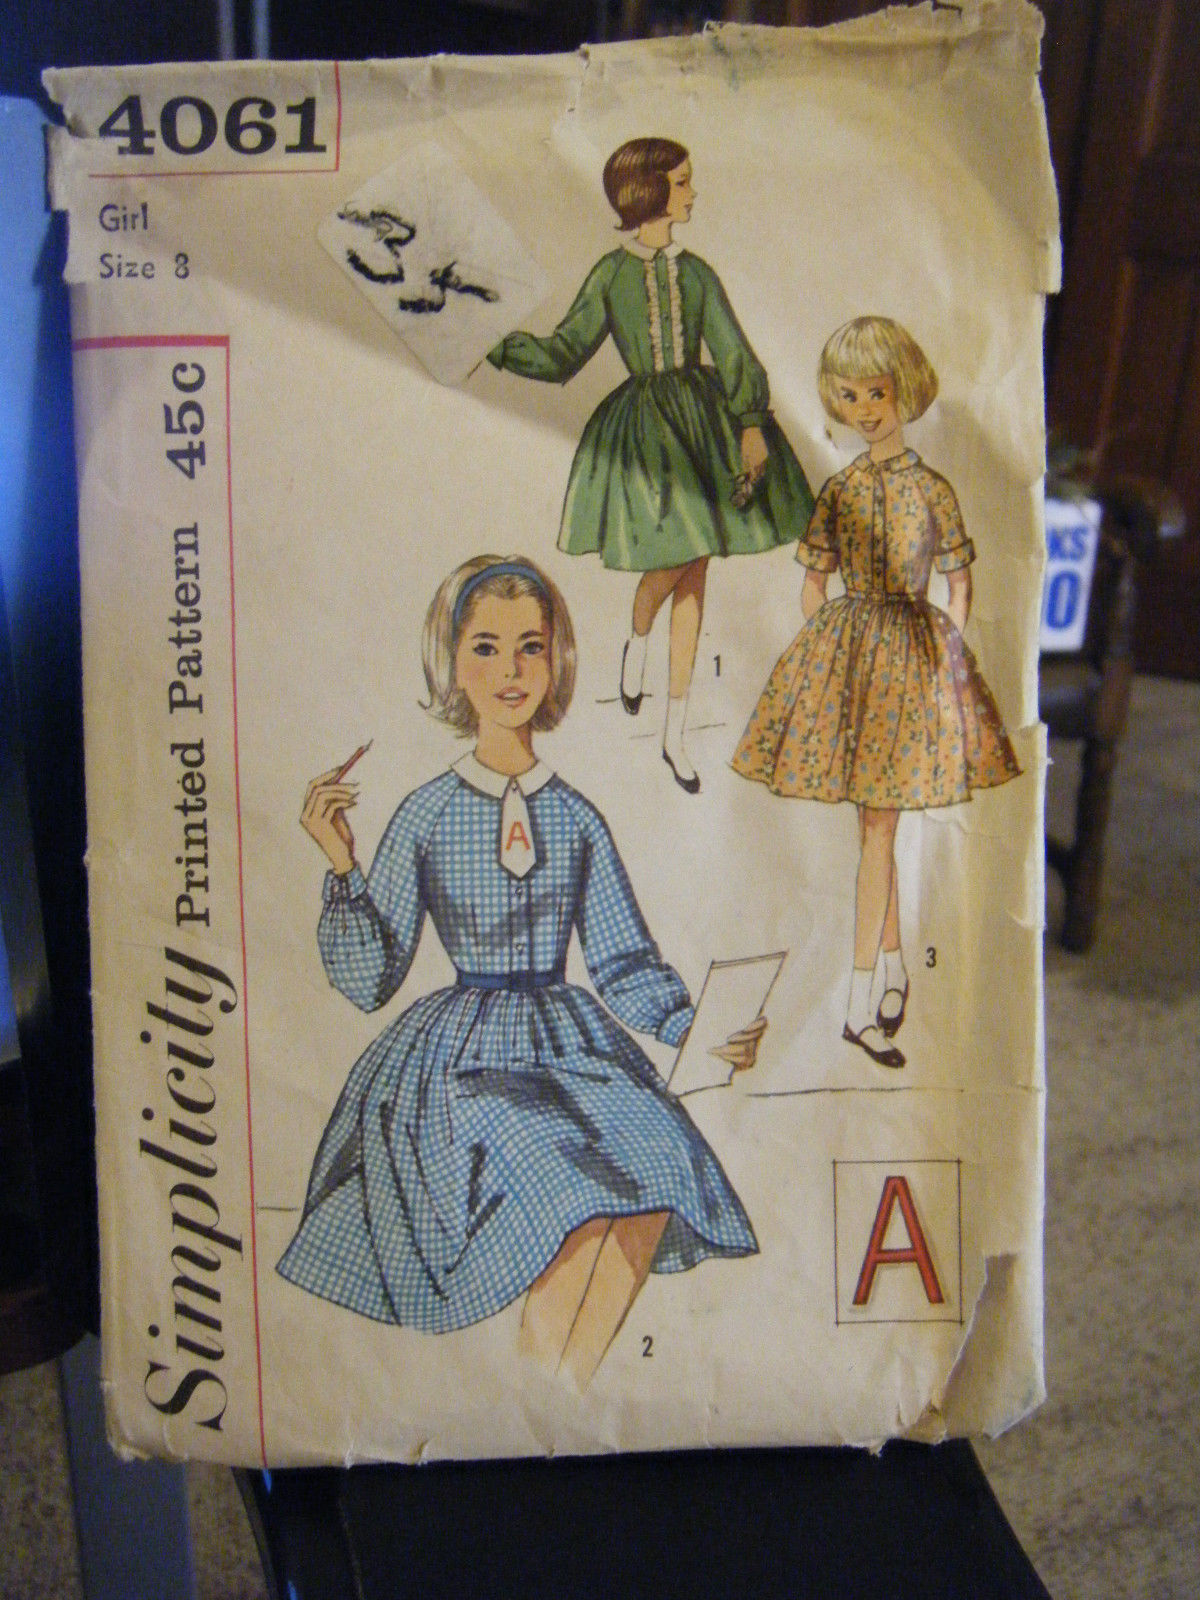 Primary image for Vintage 1960's Simplicity 4061 Girl's Dress Pattern - Size 8 Chest 26